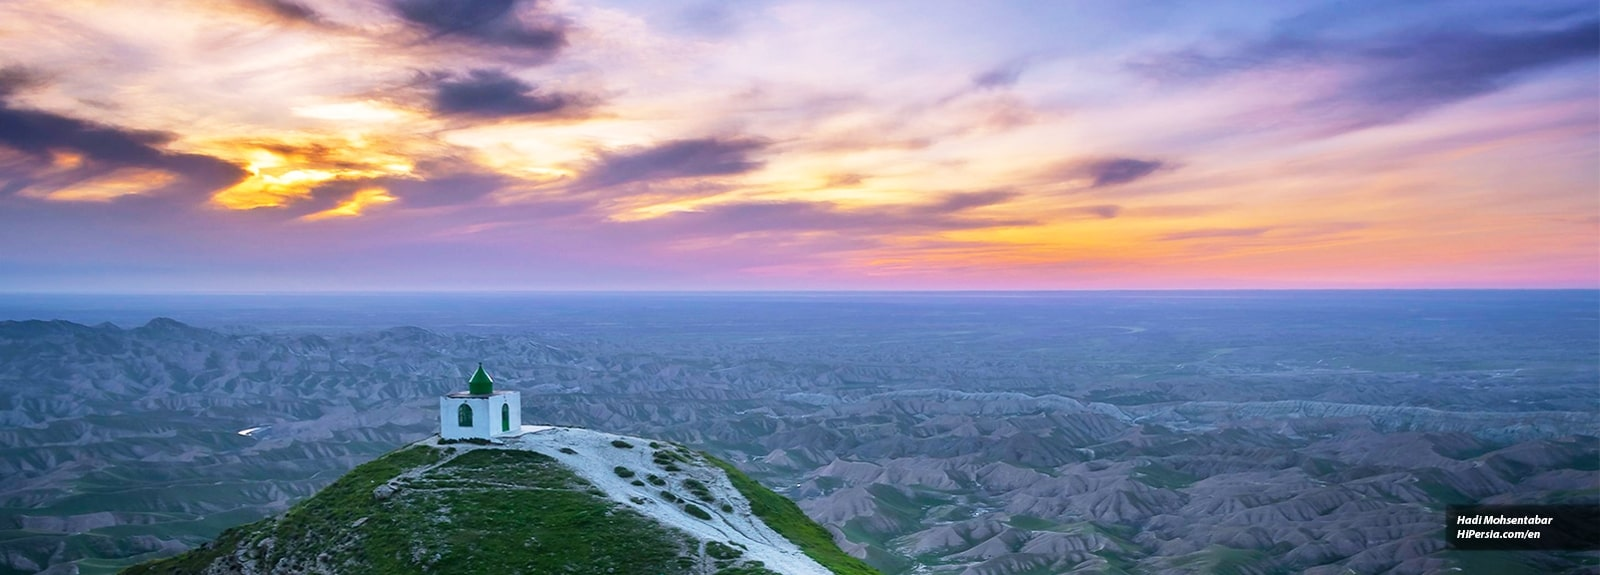 natural features in Iran